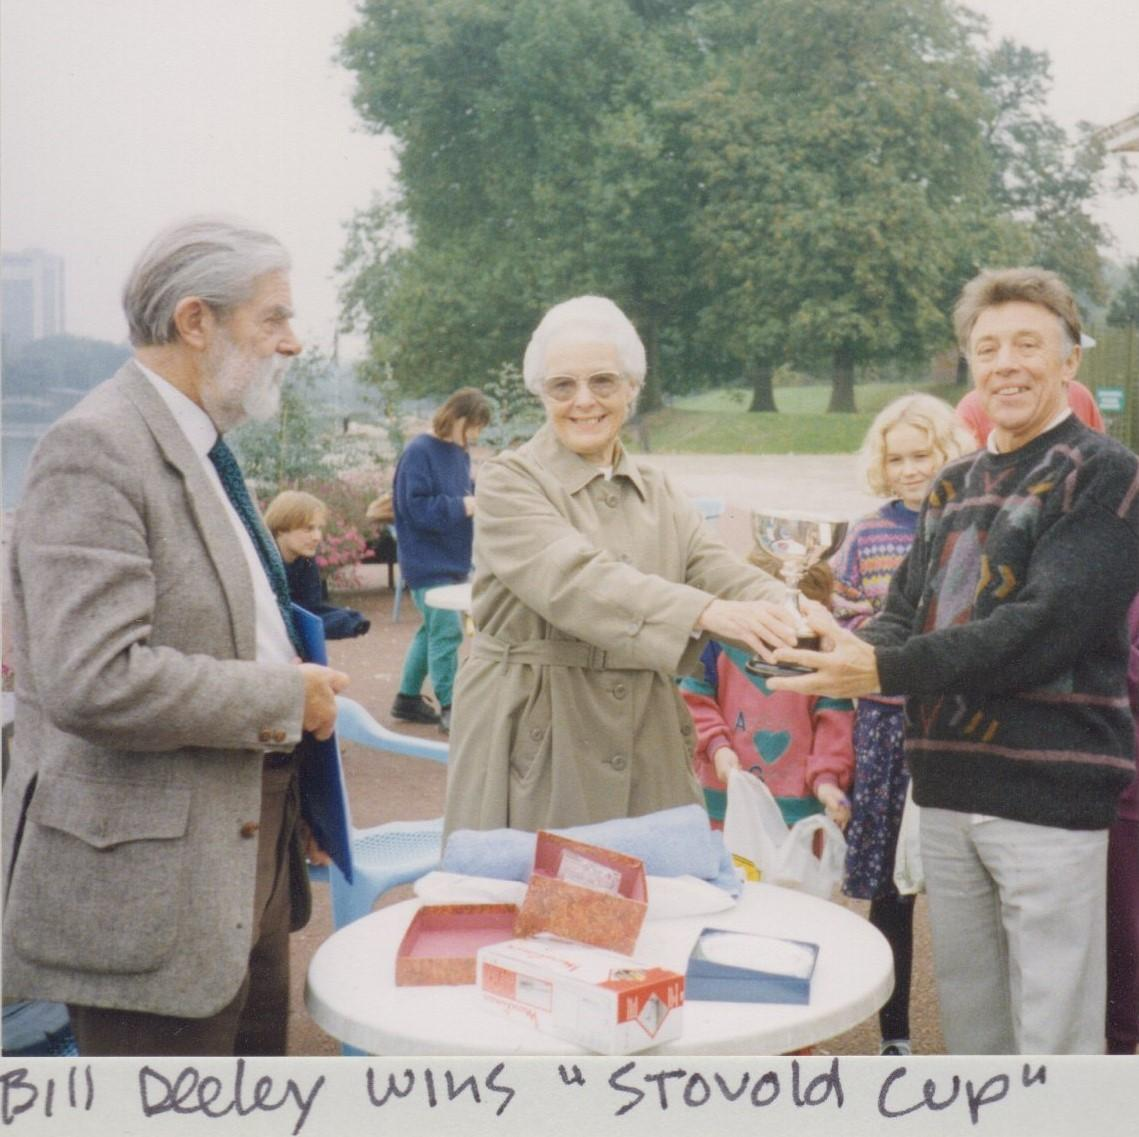 Stovold cup 1994